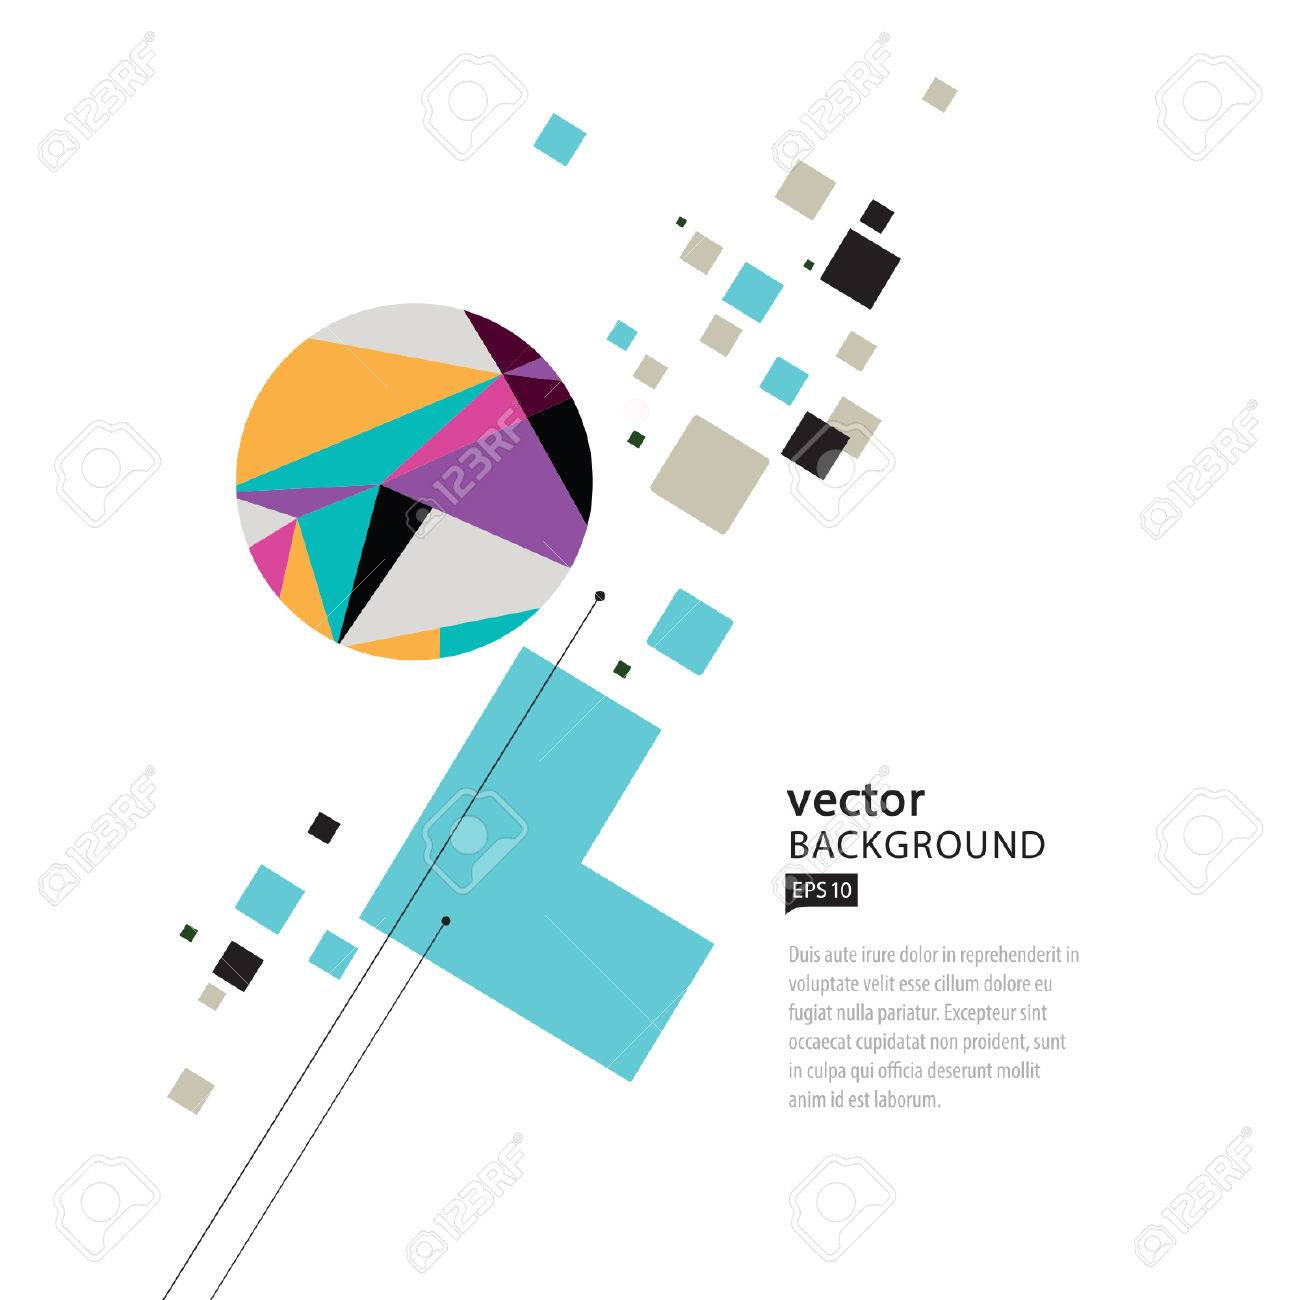 Vector Abstract Geometric Composition - 38662482